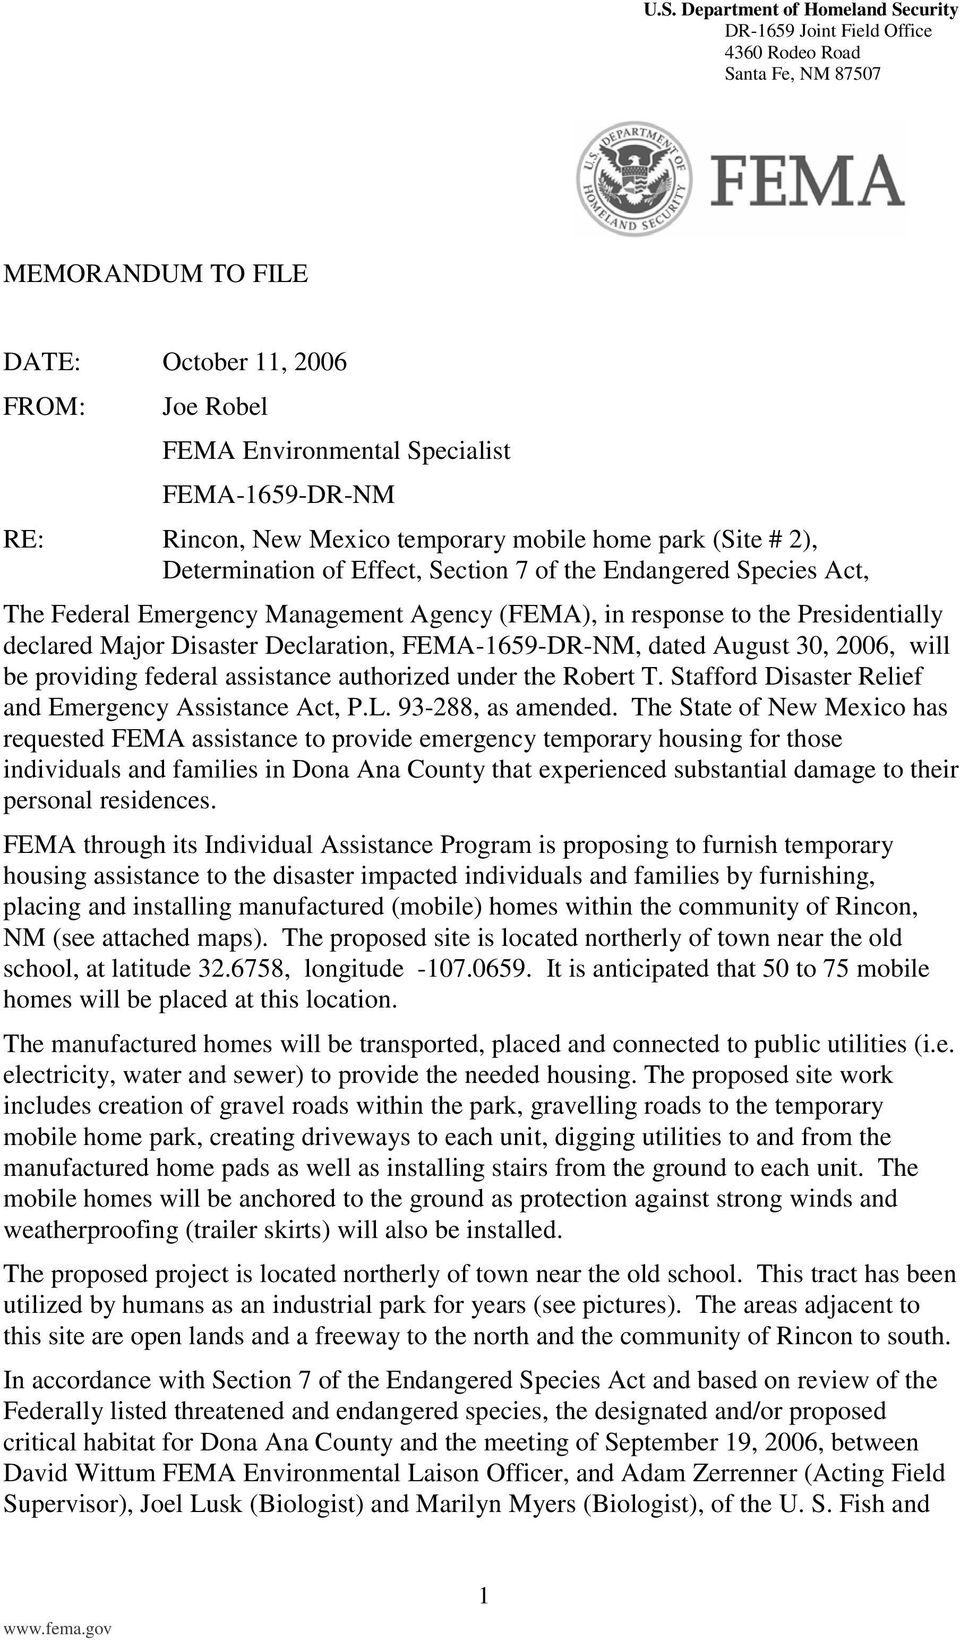 response to the Presidentially declared Major Disaster Declaration, FEMA-1659-DR-NM, dated August 30, 2006, will be providing federal assistance authorized under the Robert T.